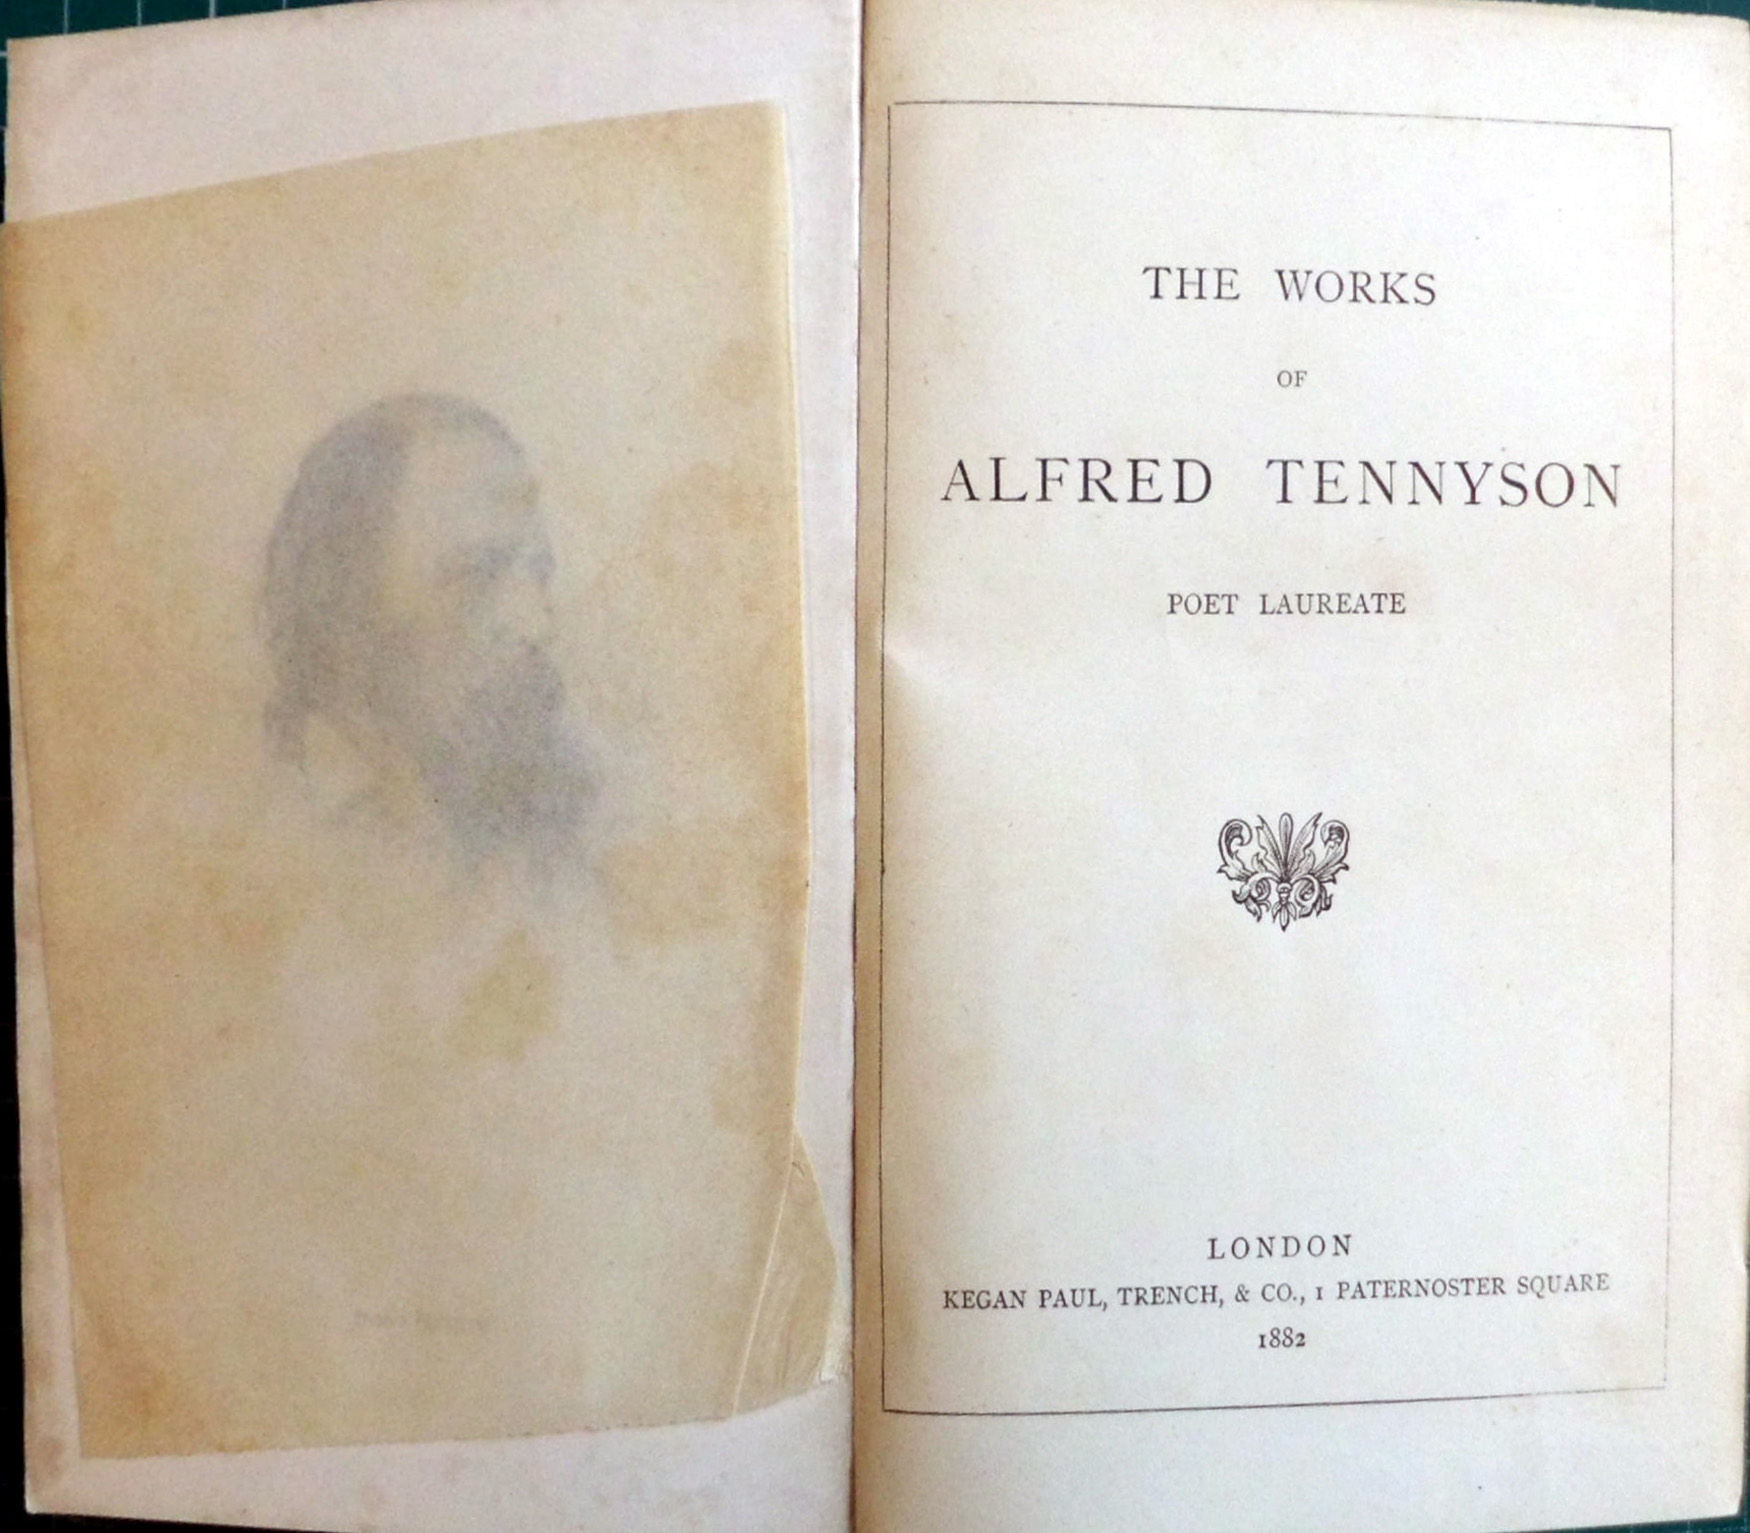 The Works Of Alfred Tennyson Poet Laureate By Alfred Tennyson Hardcover 1882 From Hanselled Books And Bibliocom